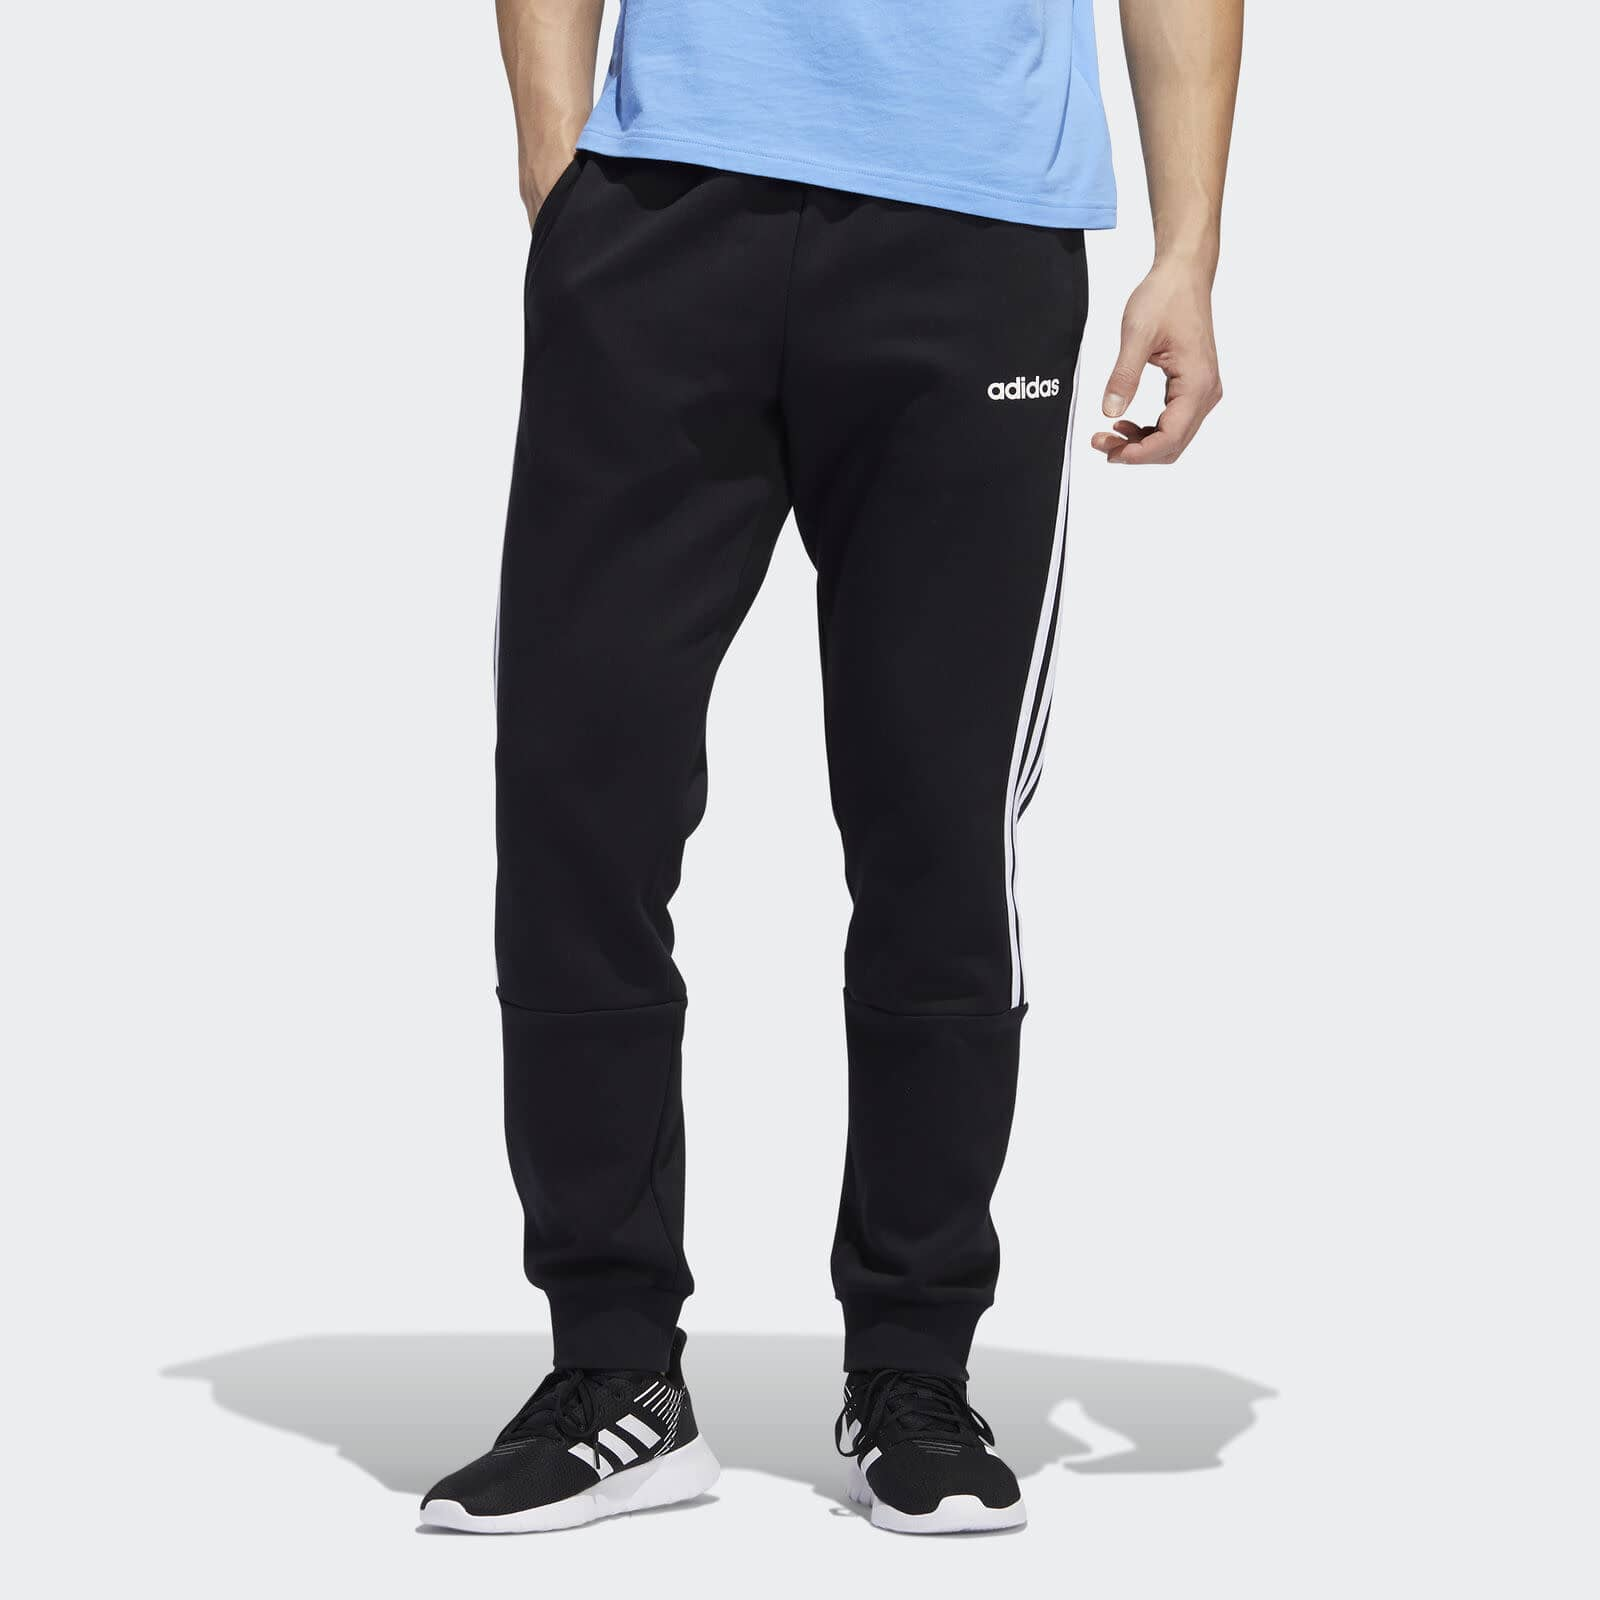 adidas Men's 3-Stripes Jogger Pants